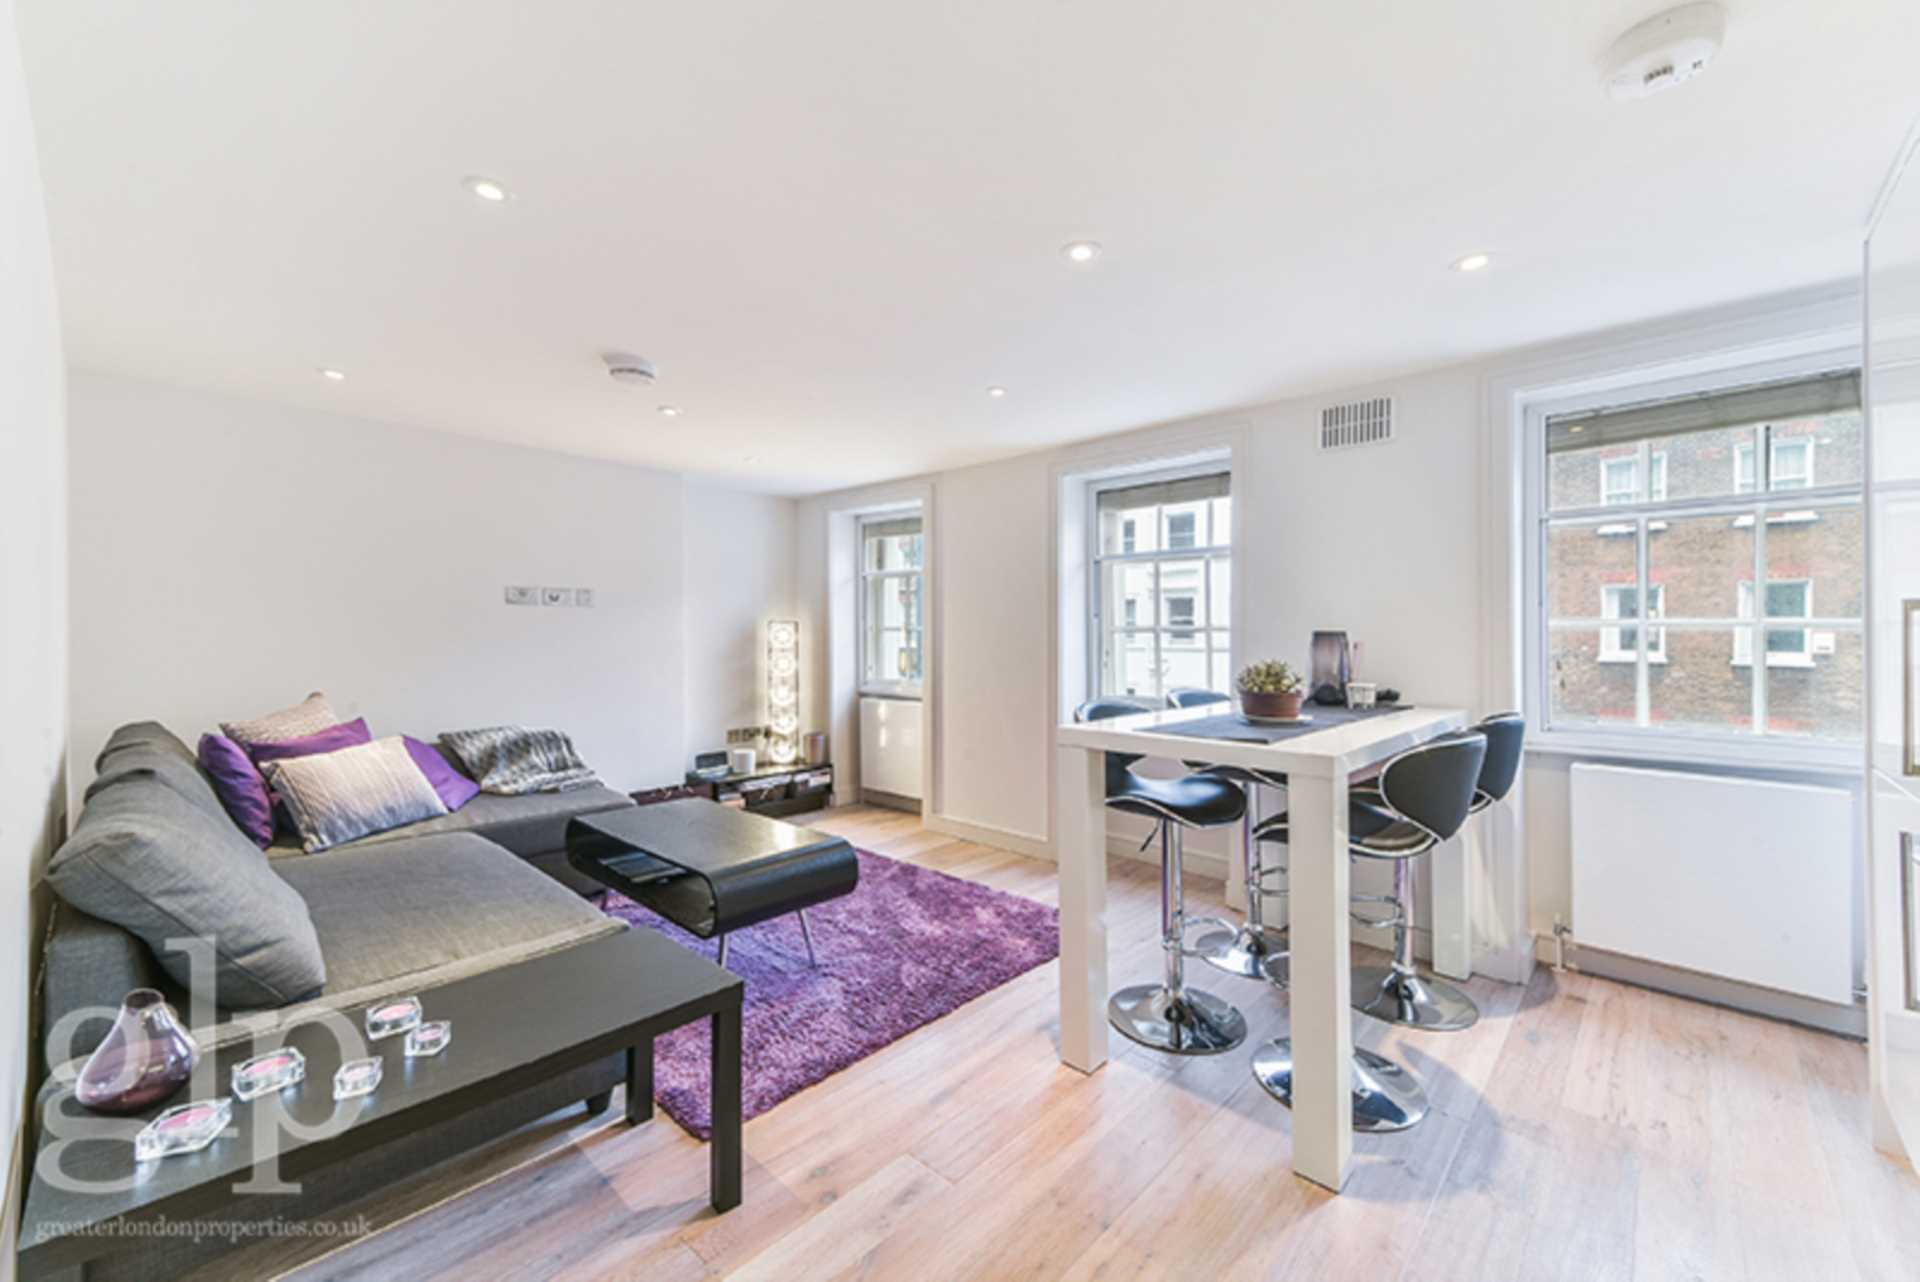 Property To Rent In London L2L62-681